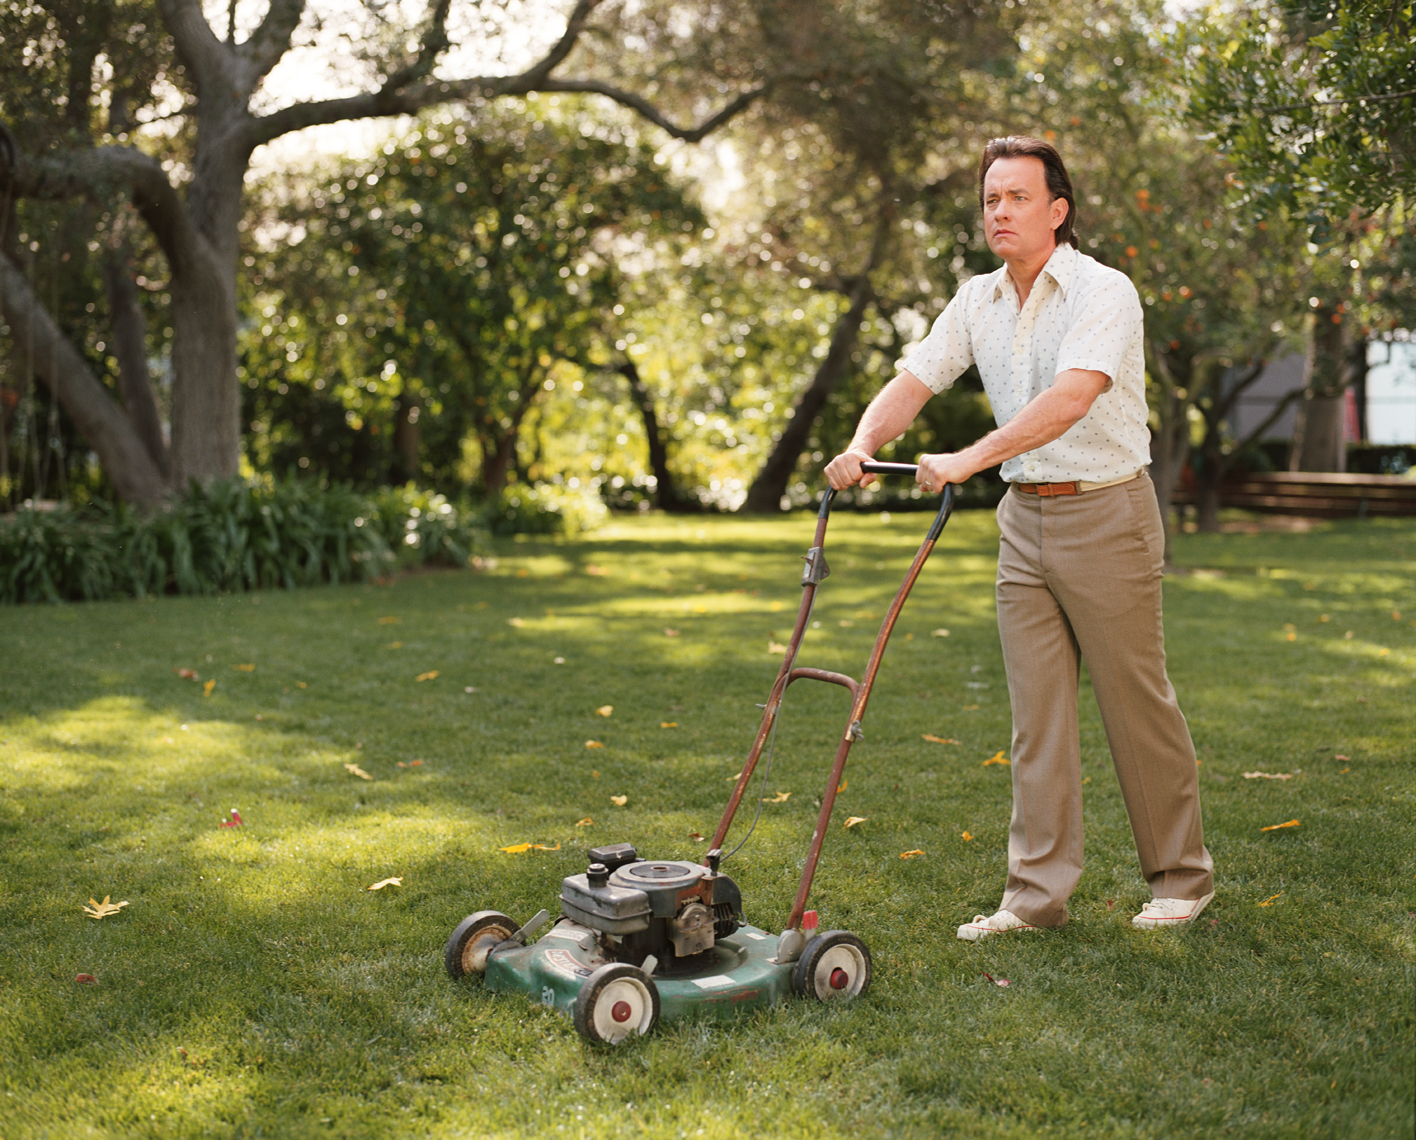 wTom_Hanks_Mowing_Lawn